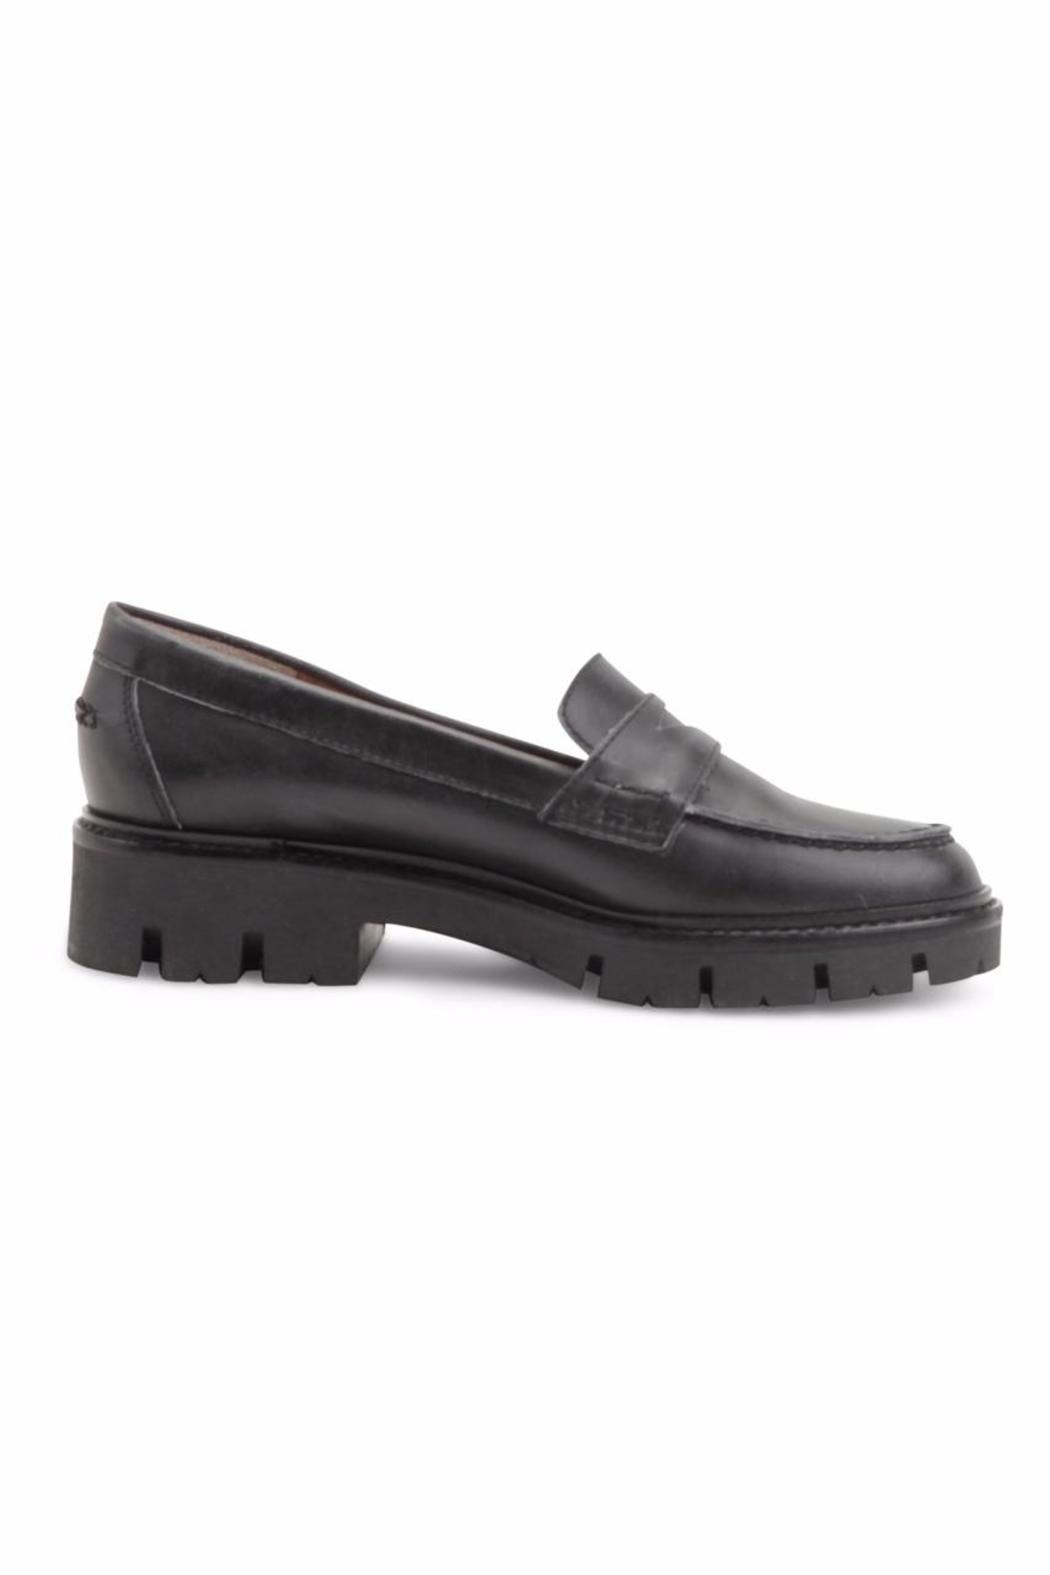 Black Moccasin Shoes — Shoptiques